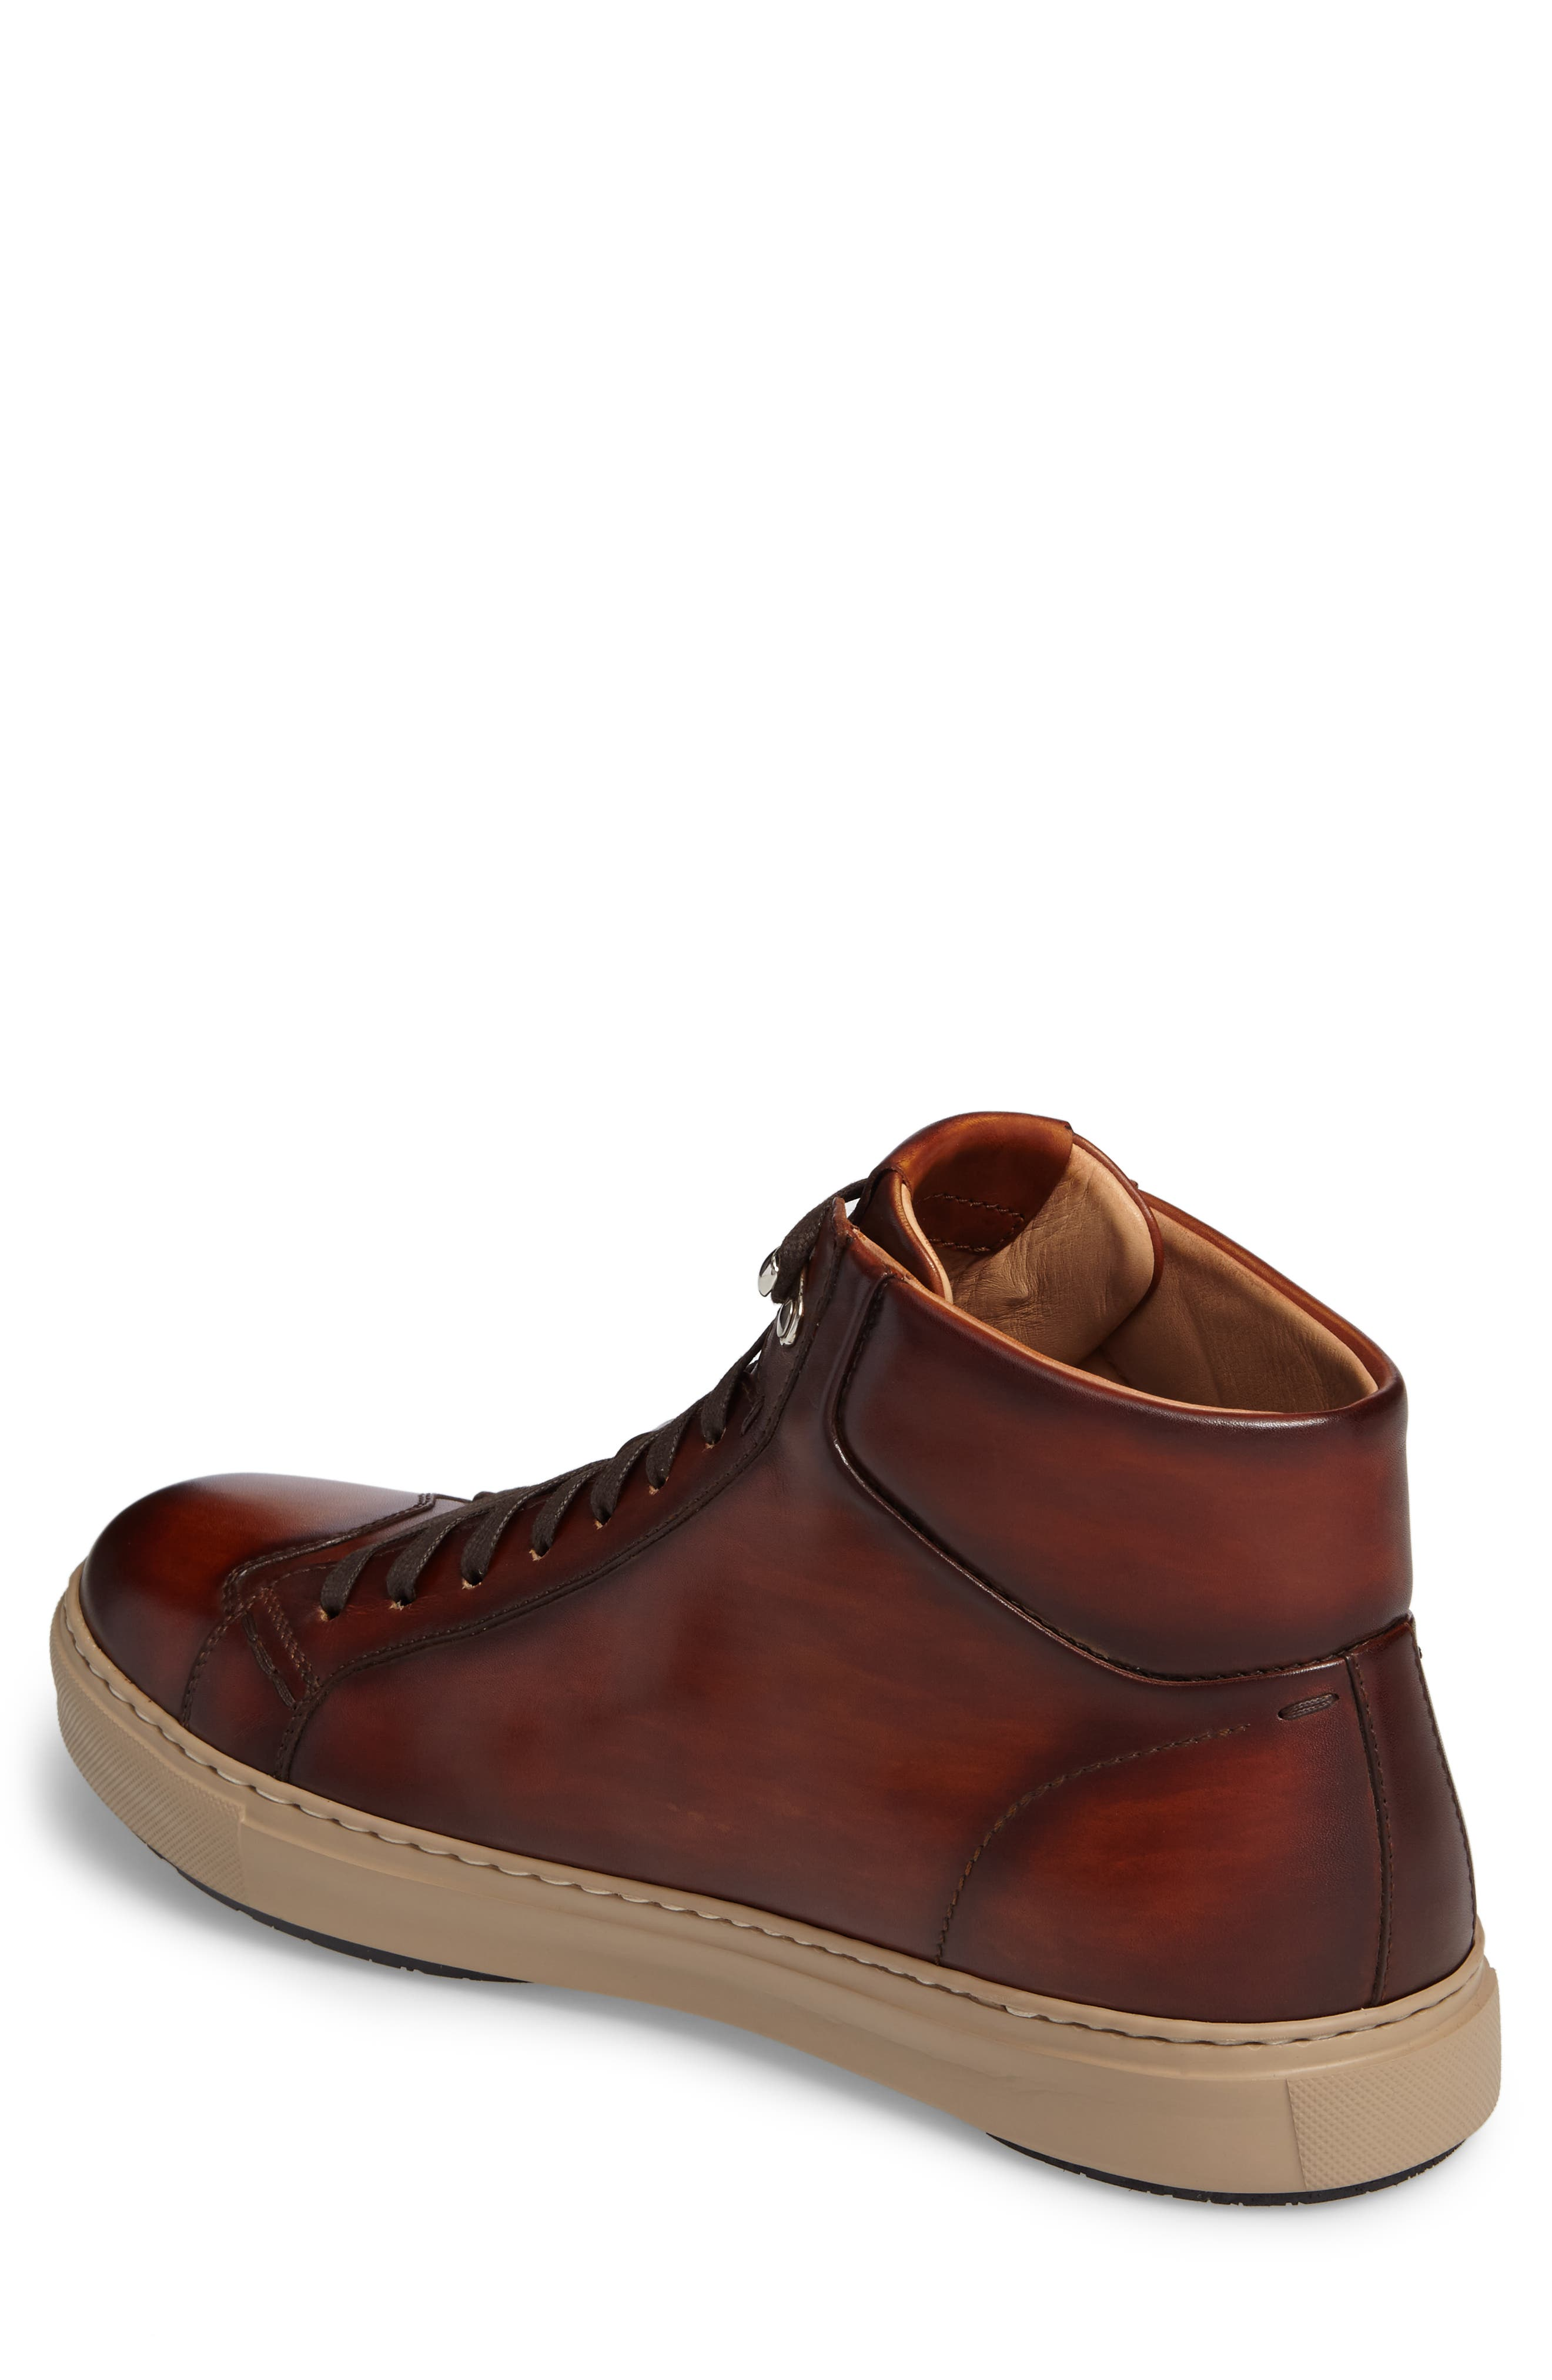 DJ Lo High-Top Sneaker,                             Alternate thumbnail 2, color,